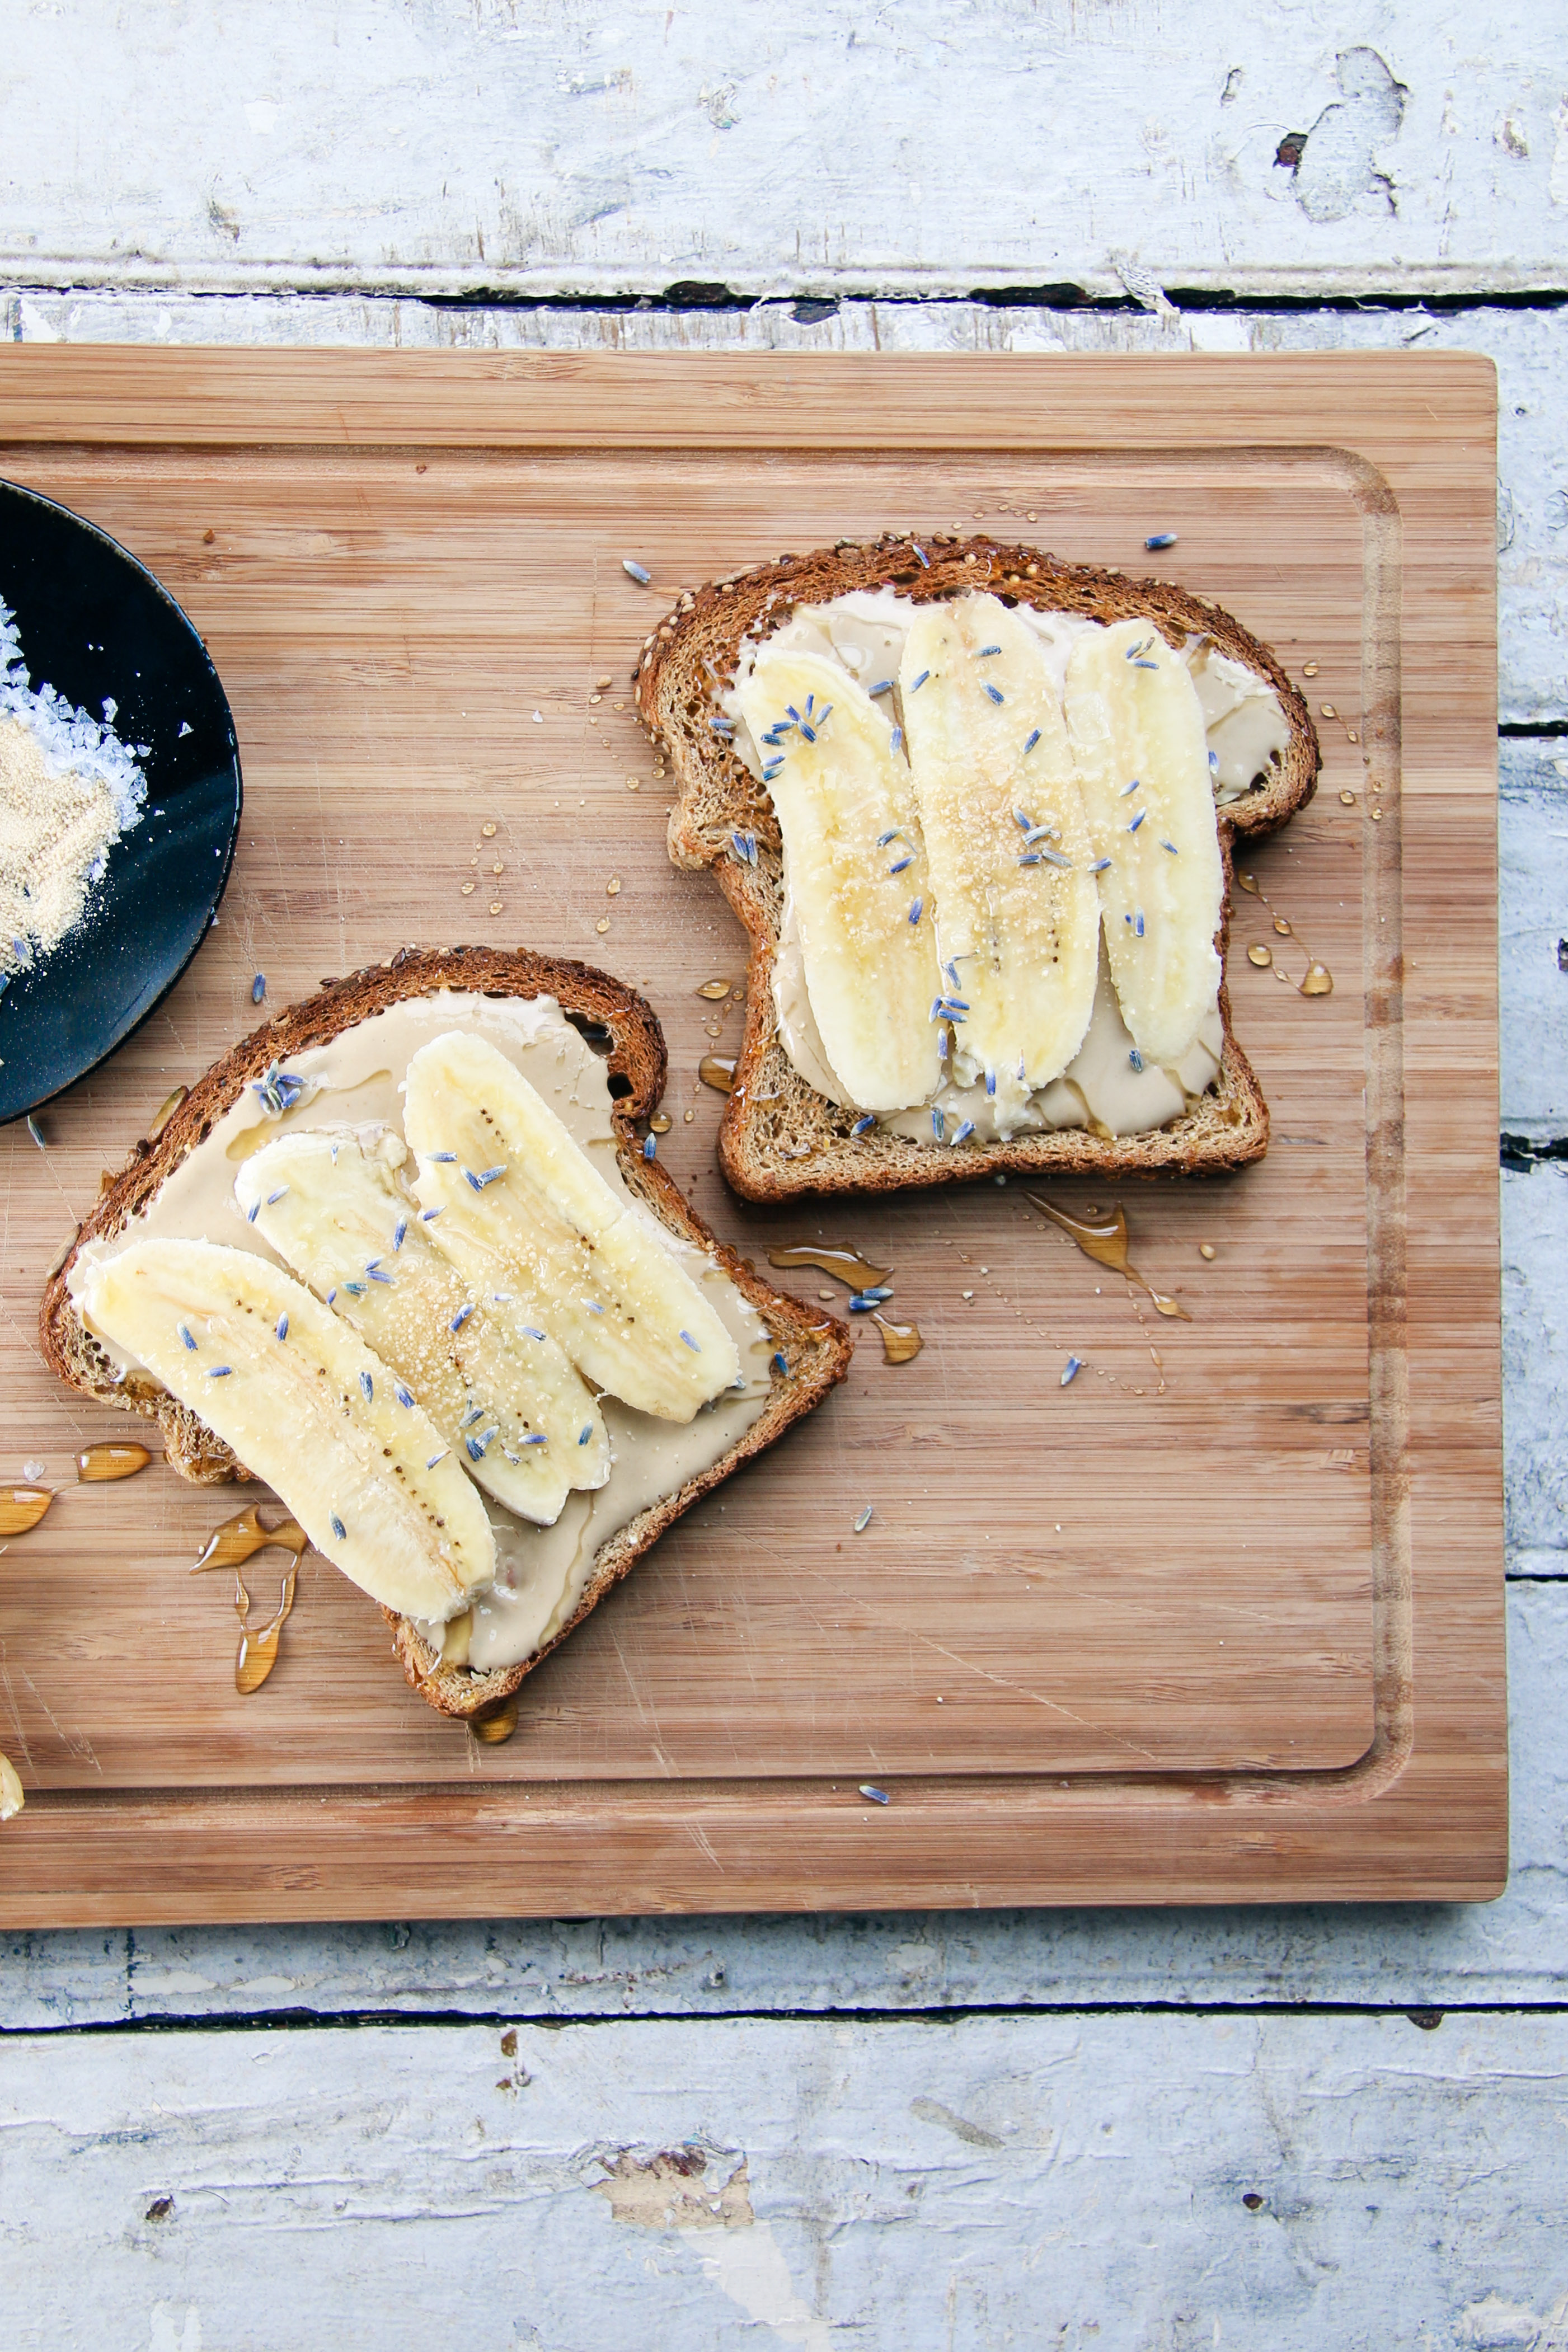 Honey Lavender Sesame Toast with Bananas | I Will Not Eat Oysters